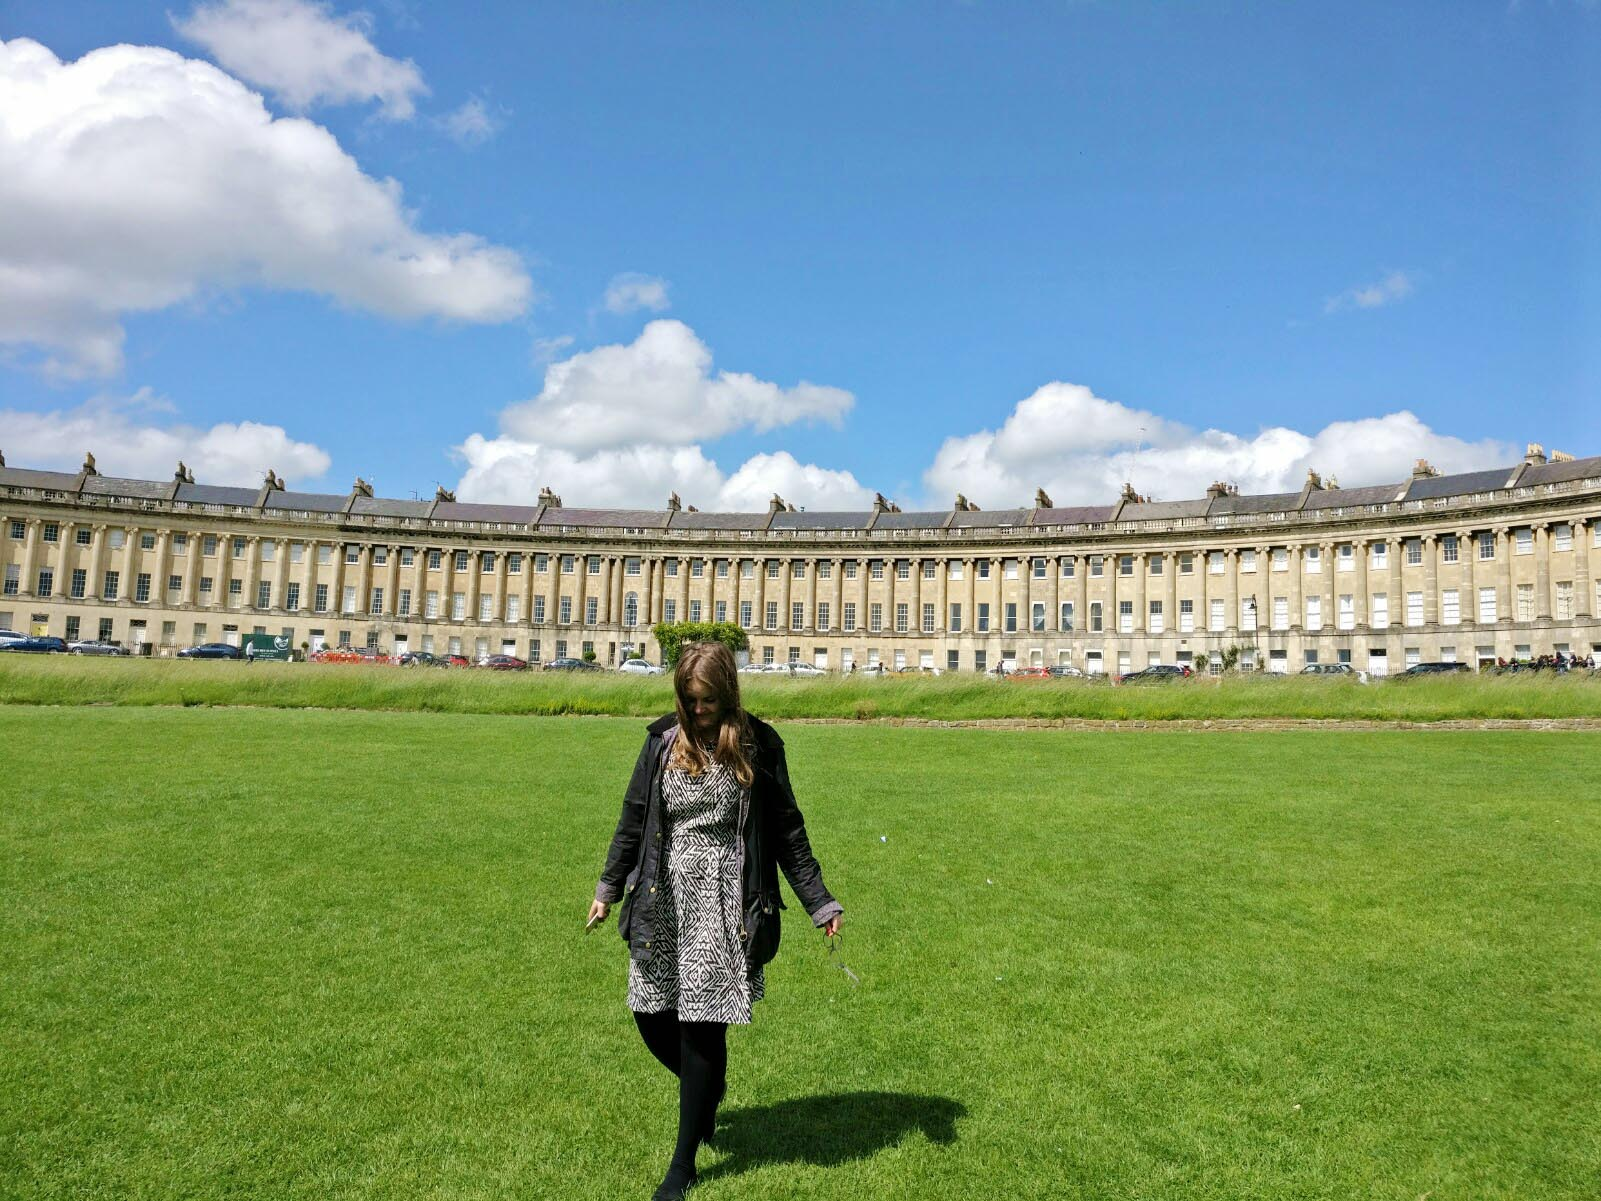 Elspeth Jackson at The Royal Crescent in Bath